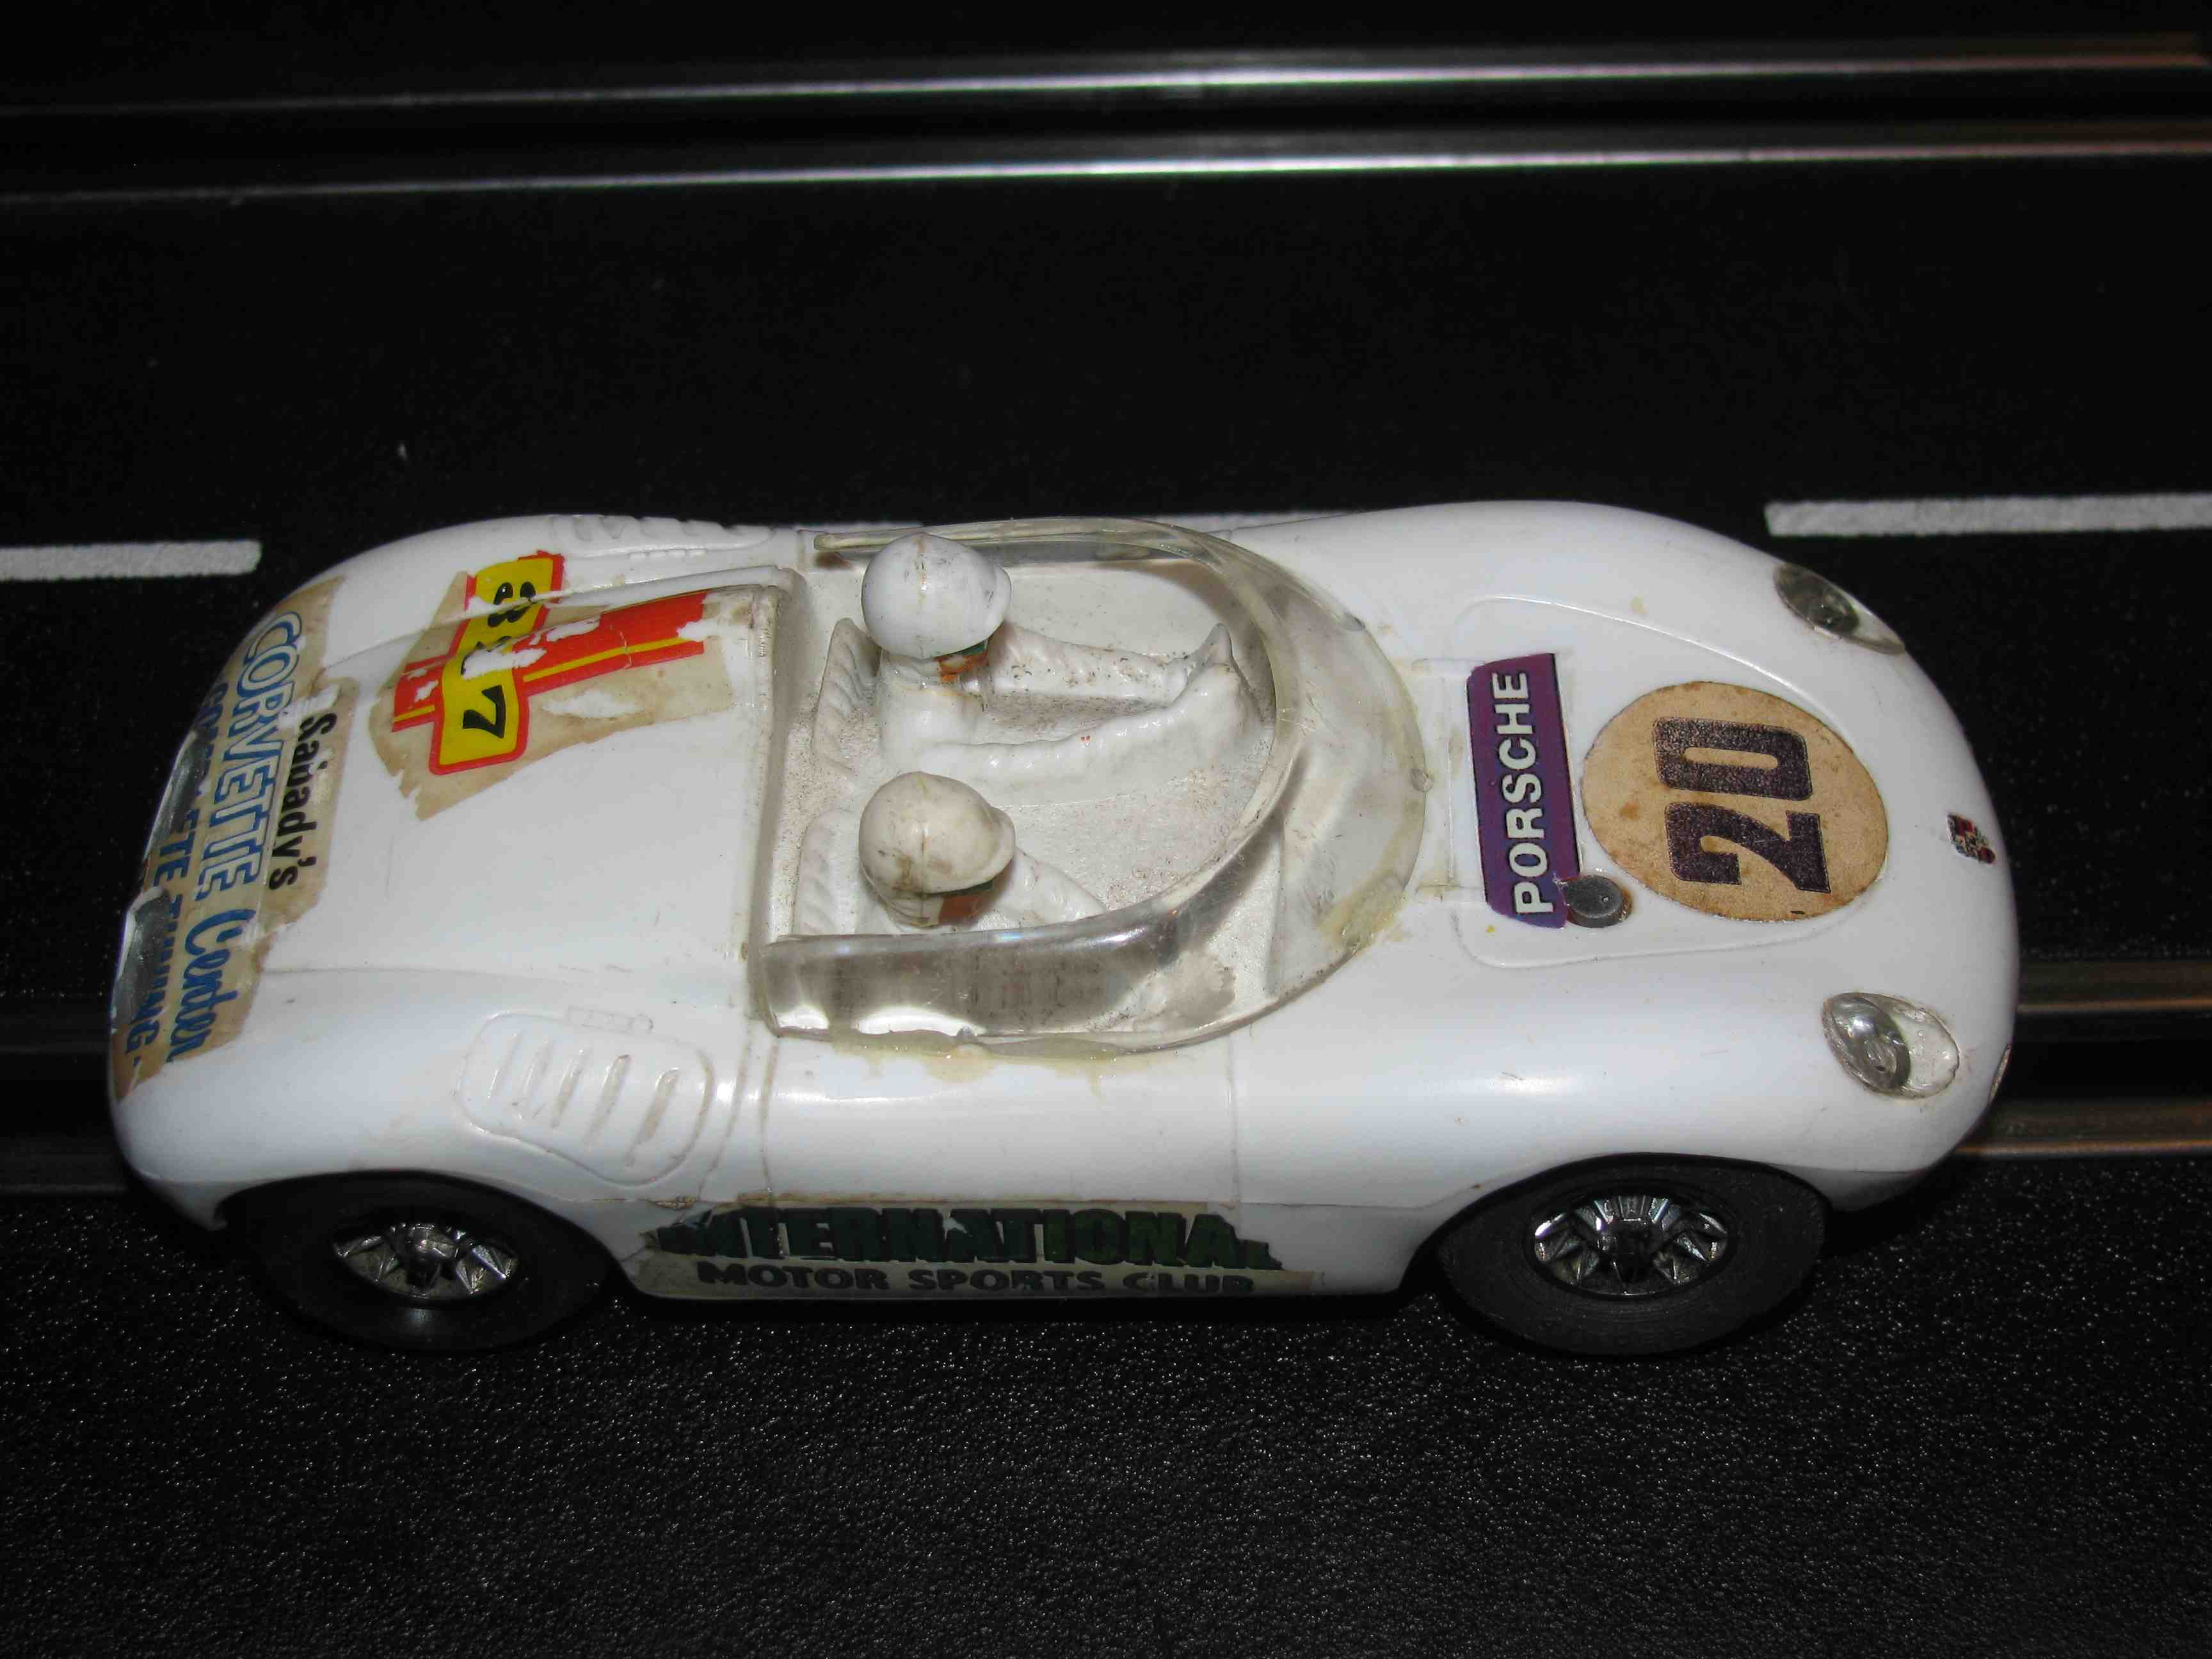 * SOLD * Strombecker Porsche 1955 RS61 Spyder Panamericana Racer Slot Car 1/32 Scale